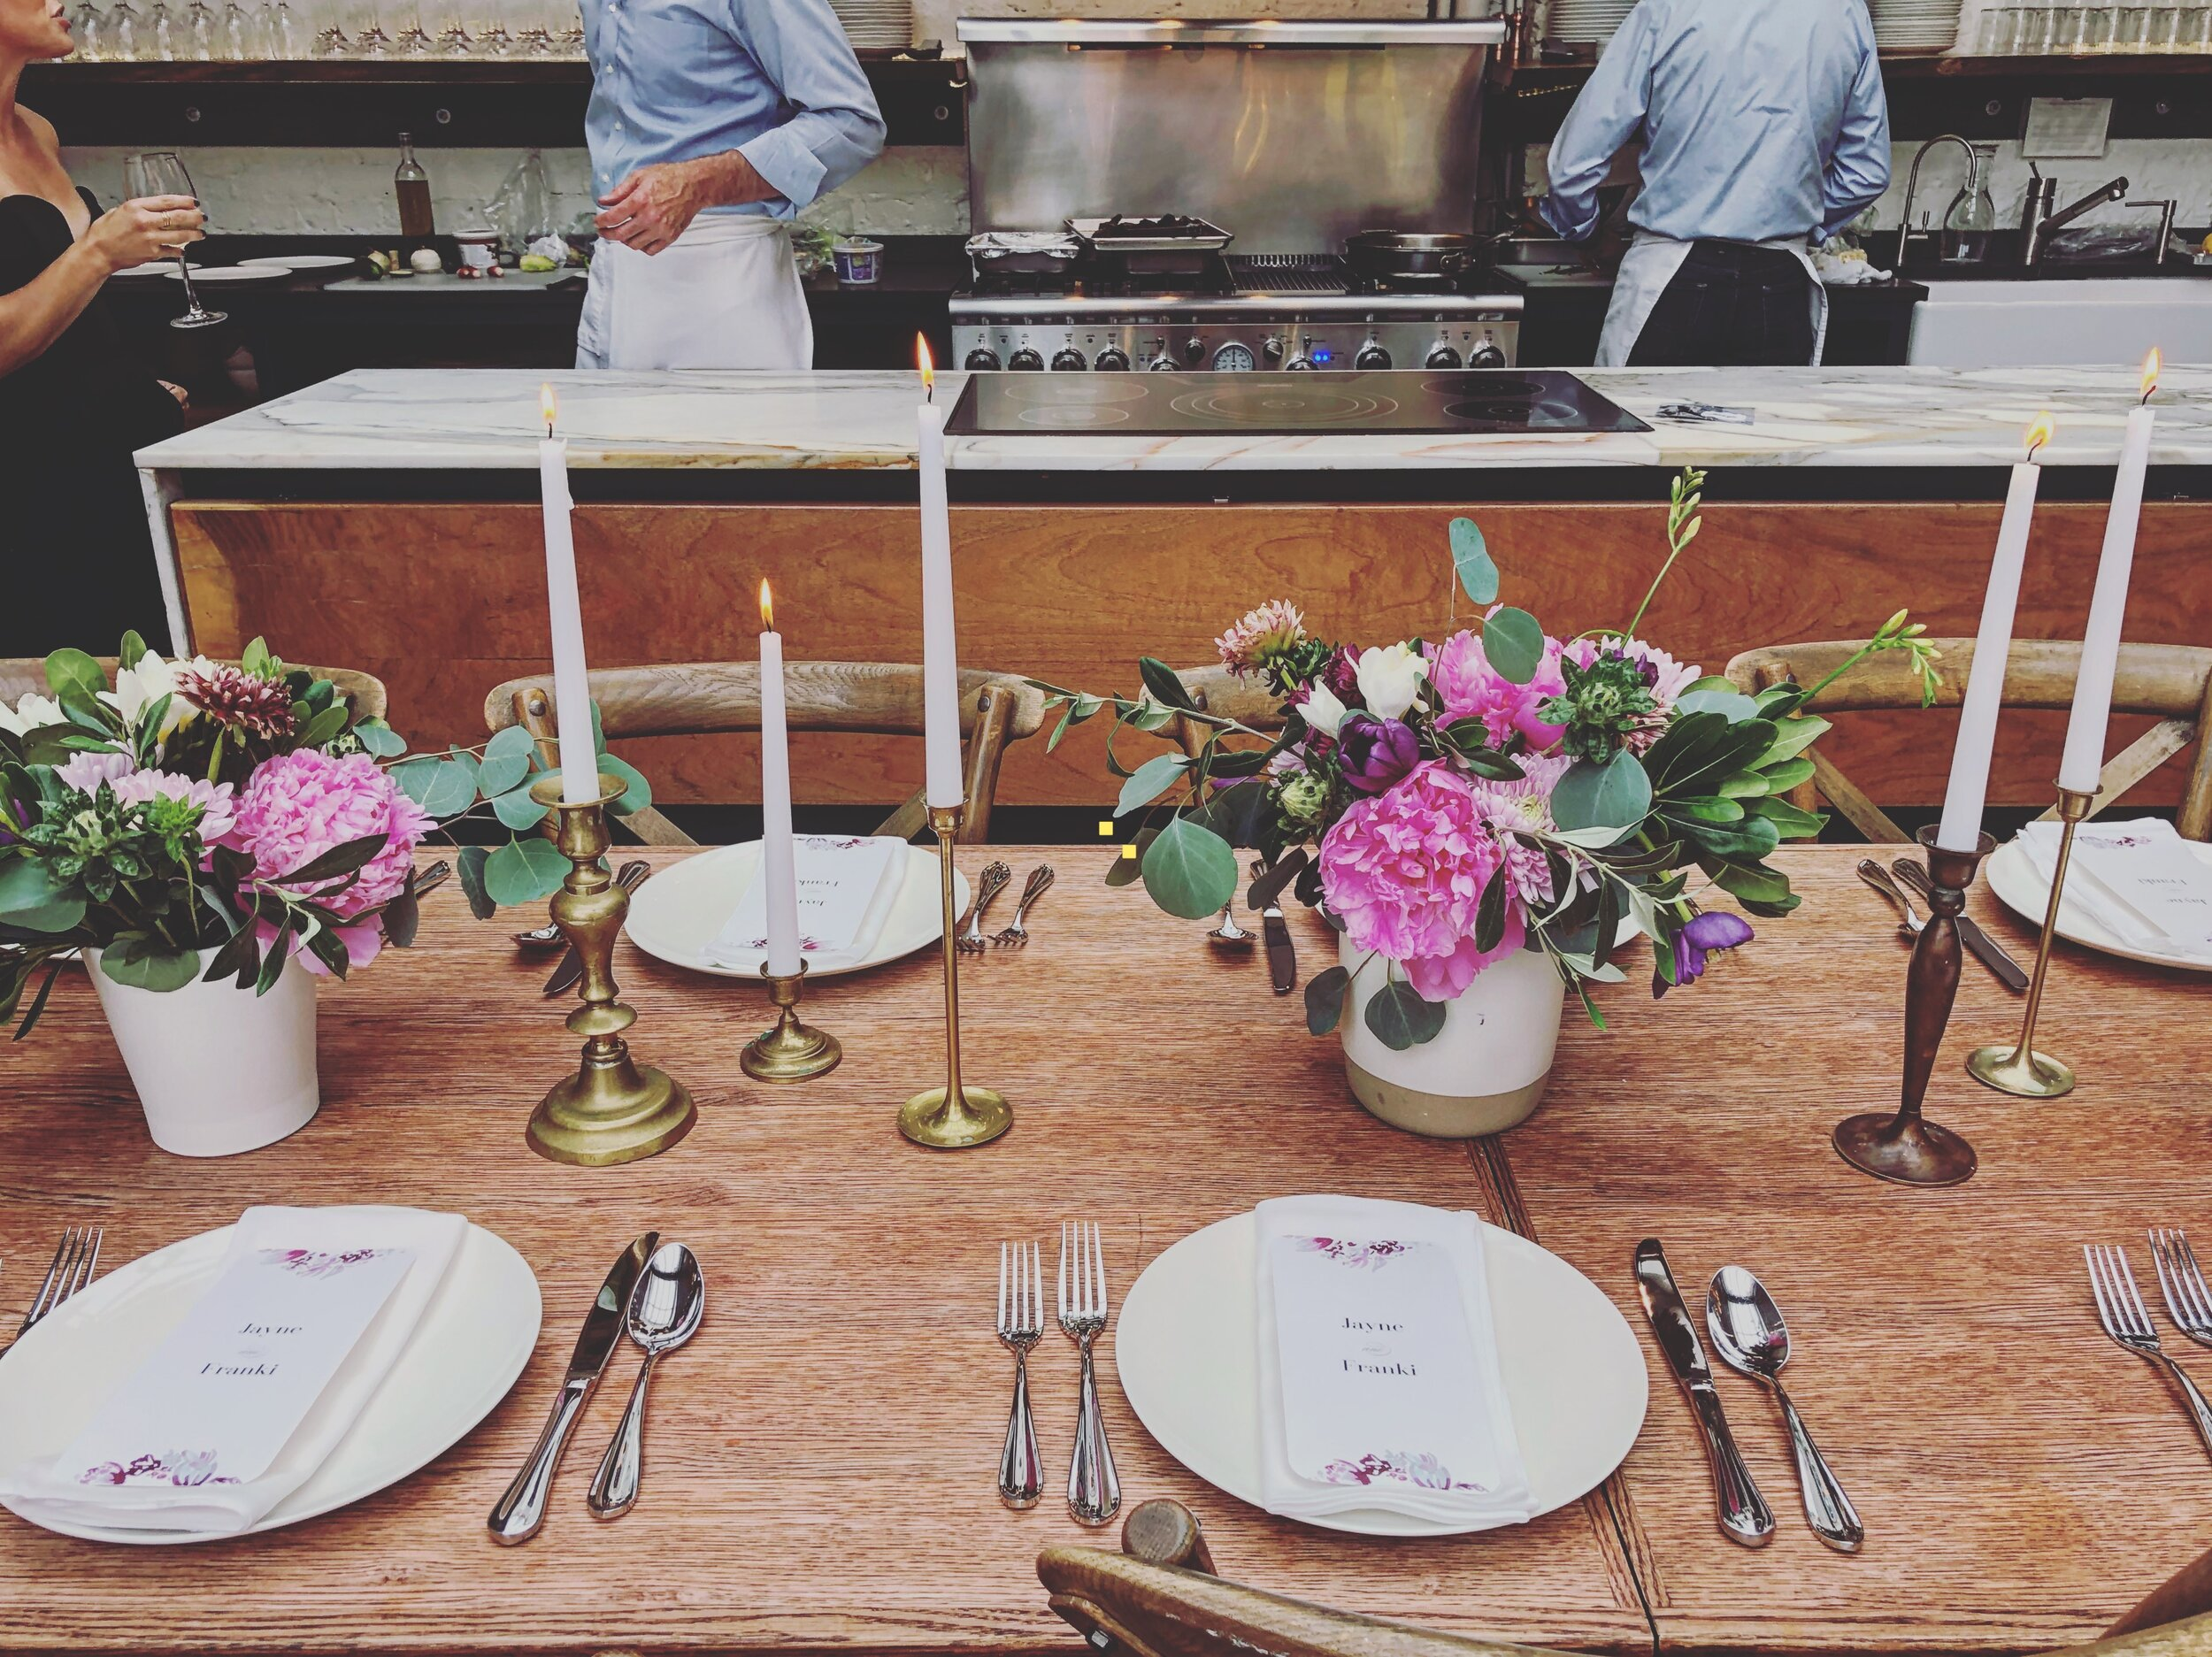 cookhouse-san-francisco-private-chef-birthday-dinner-flower-decorations.JPG